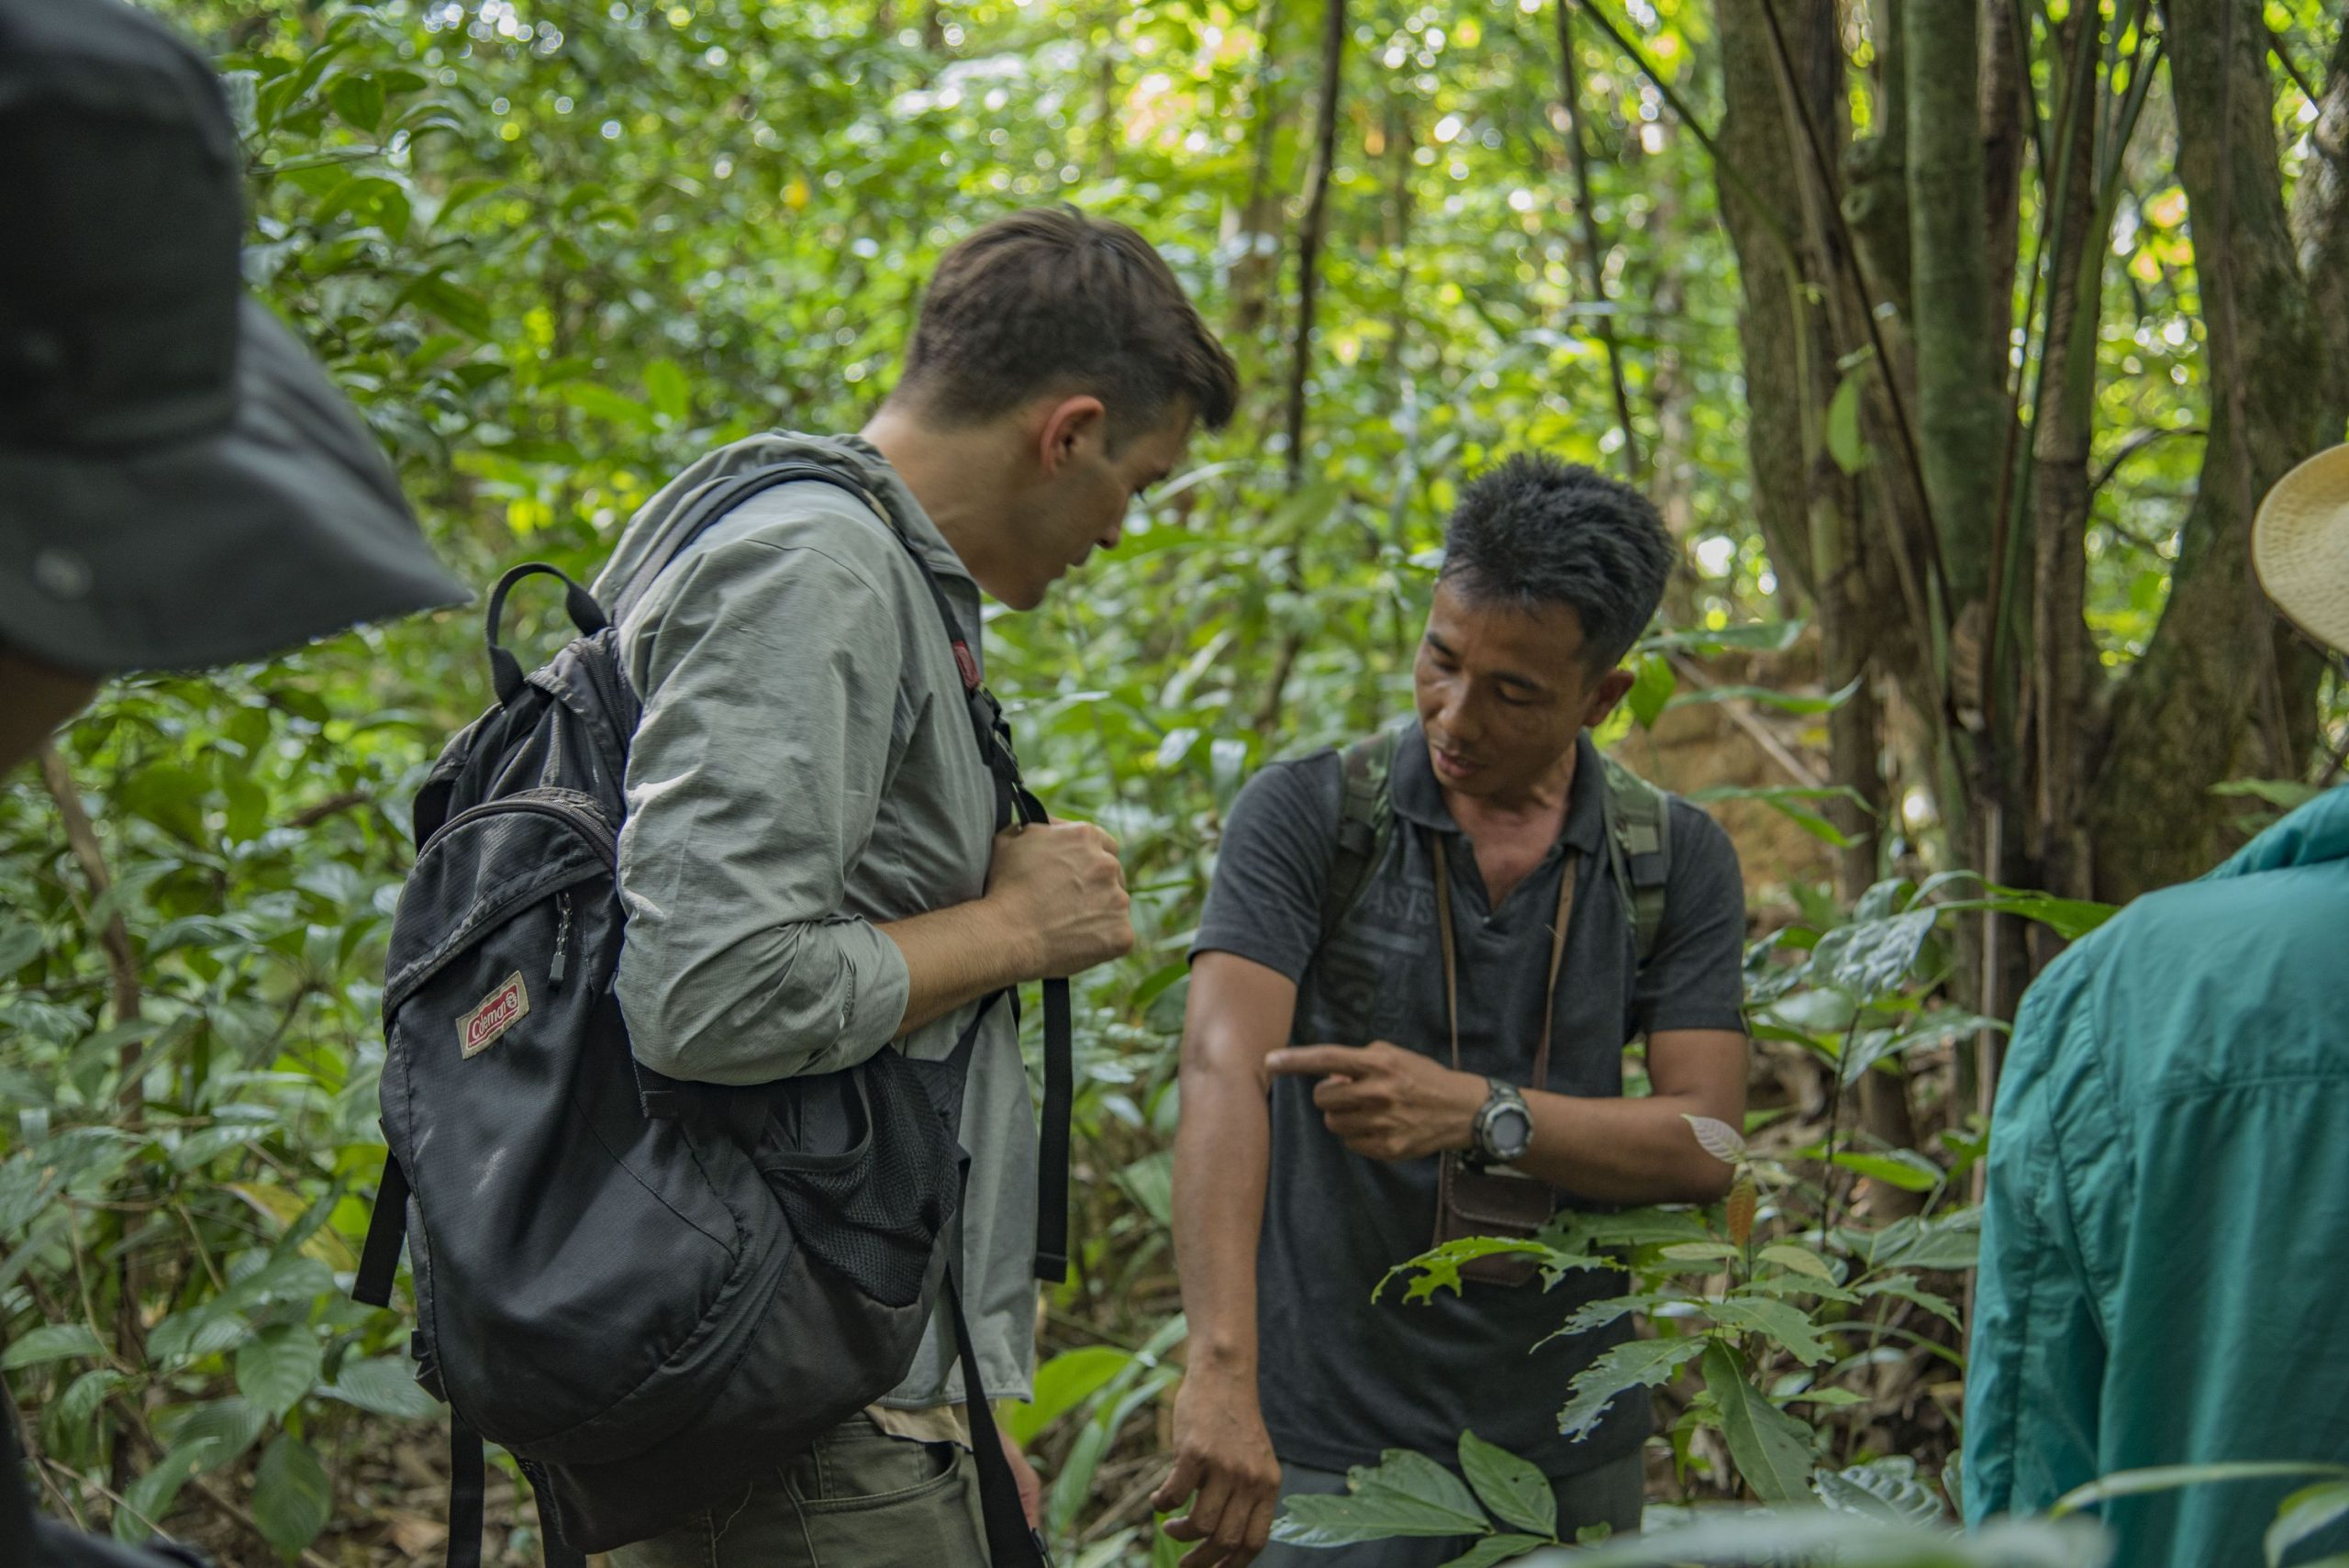 Learning about plant applications in the jungle